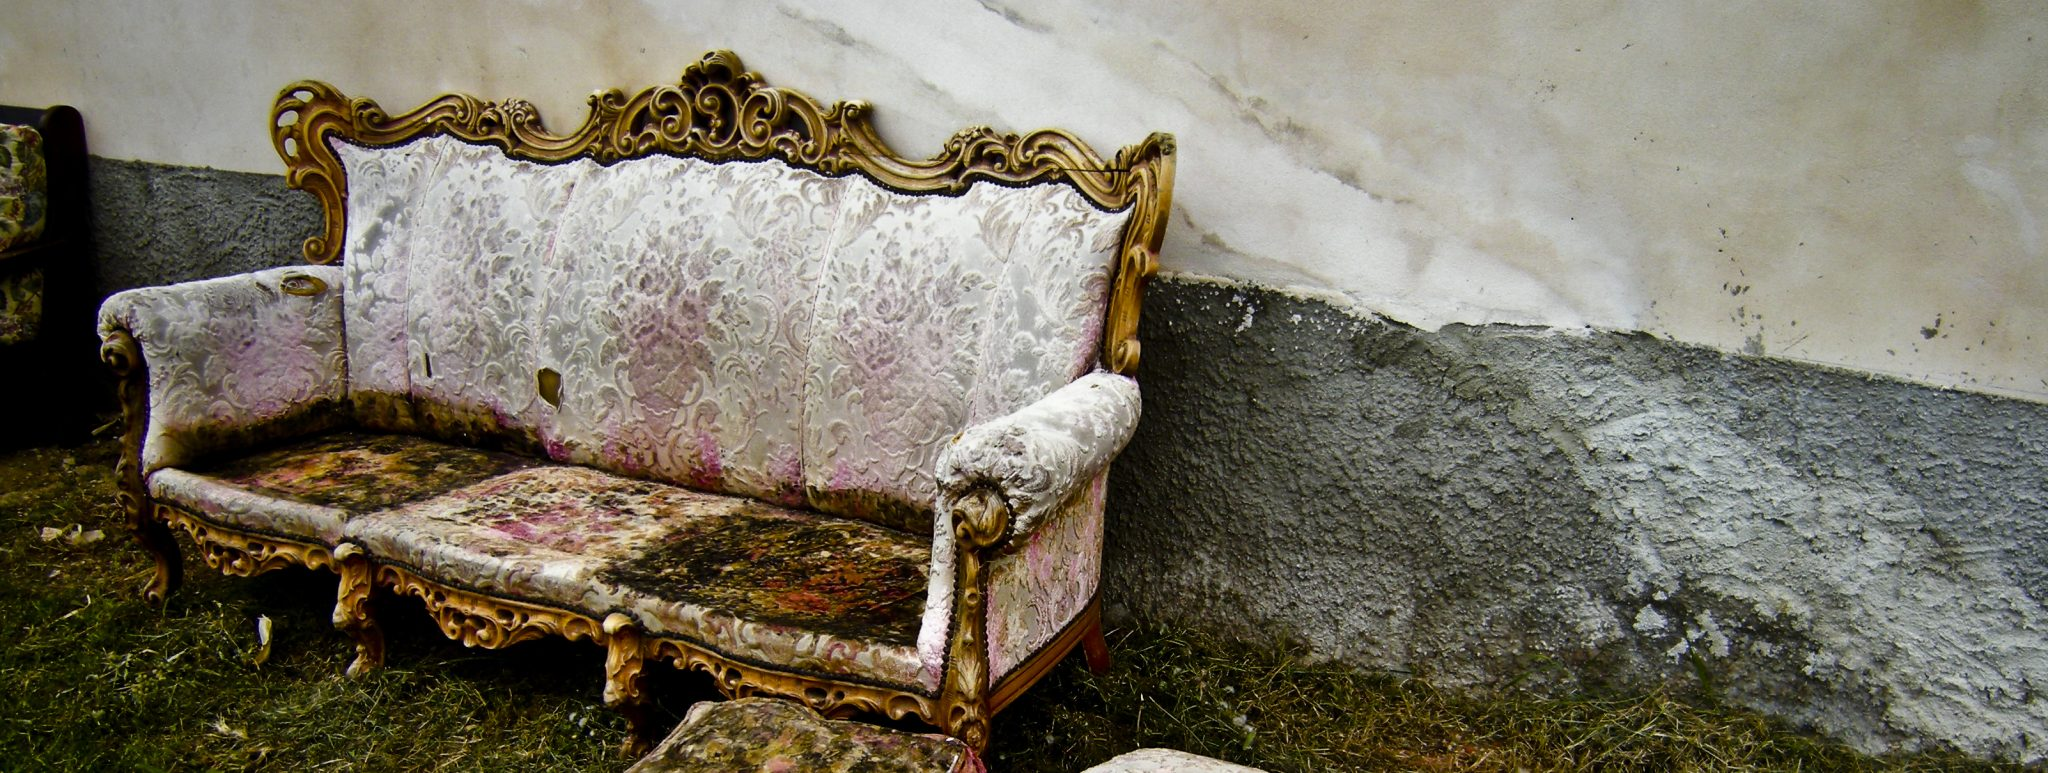 Get Rid Of Old Sofa Best Ways To Get Rid Of Old Furniture Inreads Thesofa